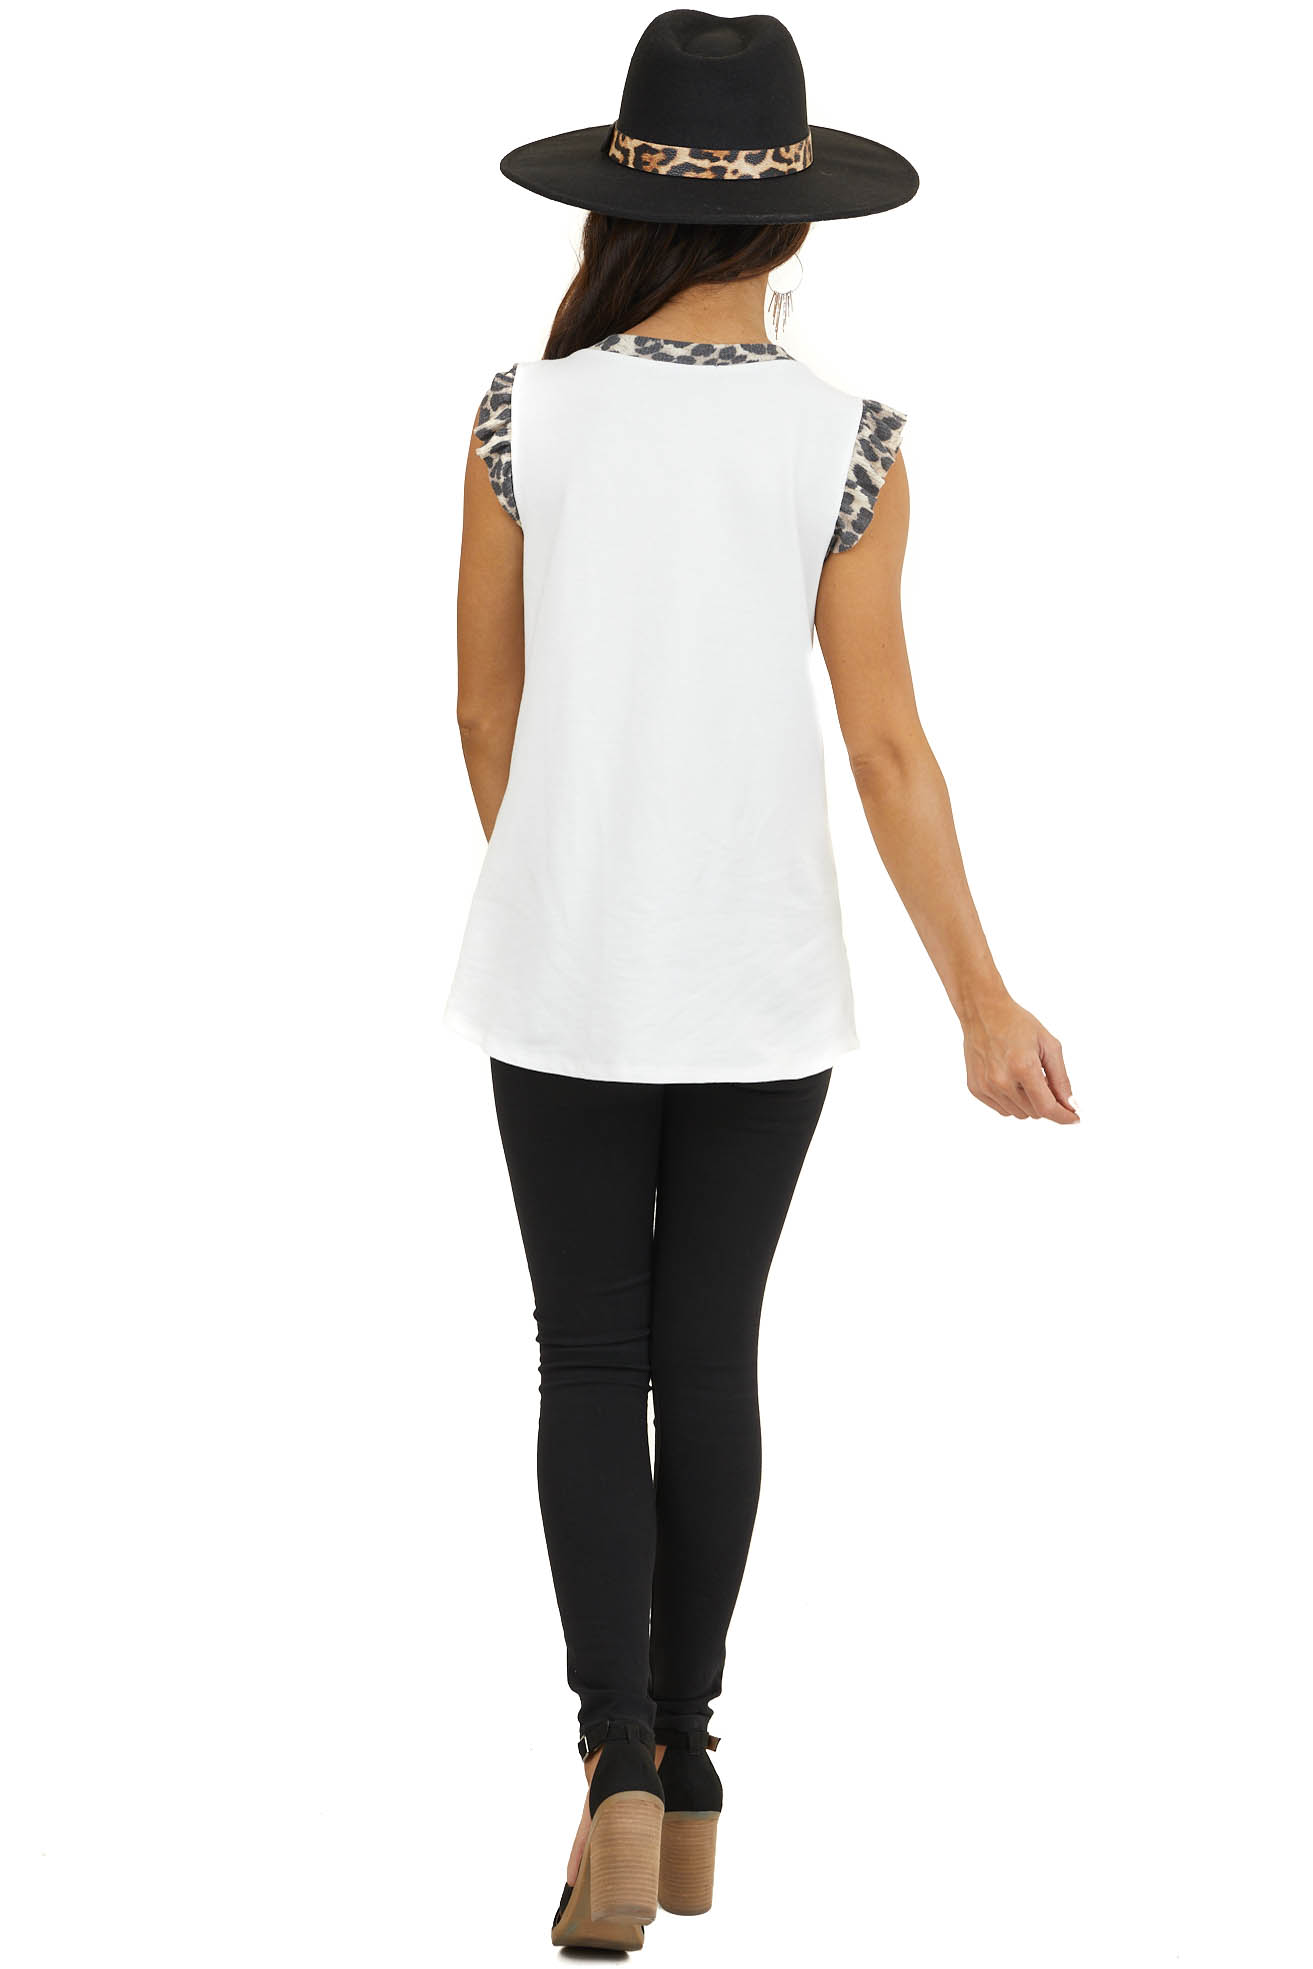 Off White 'Free Spirit' Graphic Tank Top with Leopard Accent